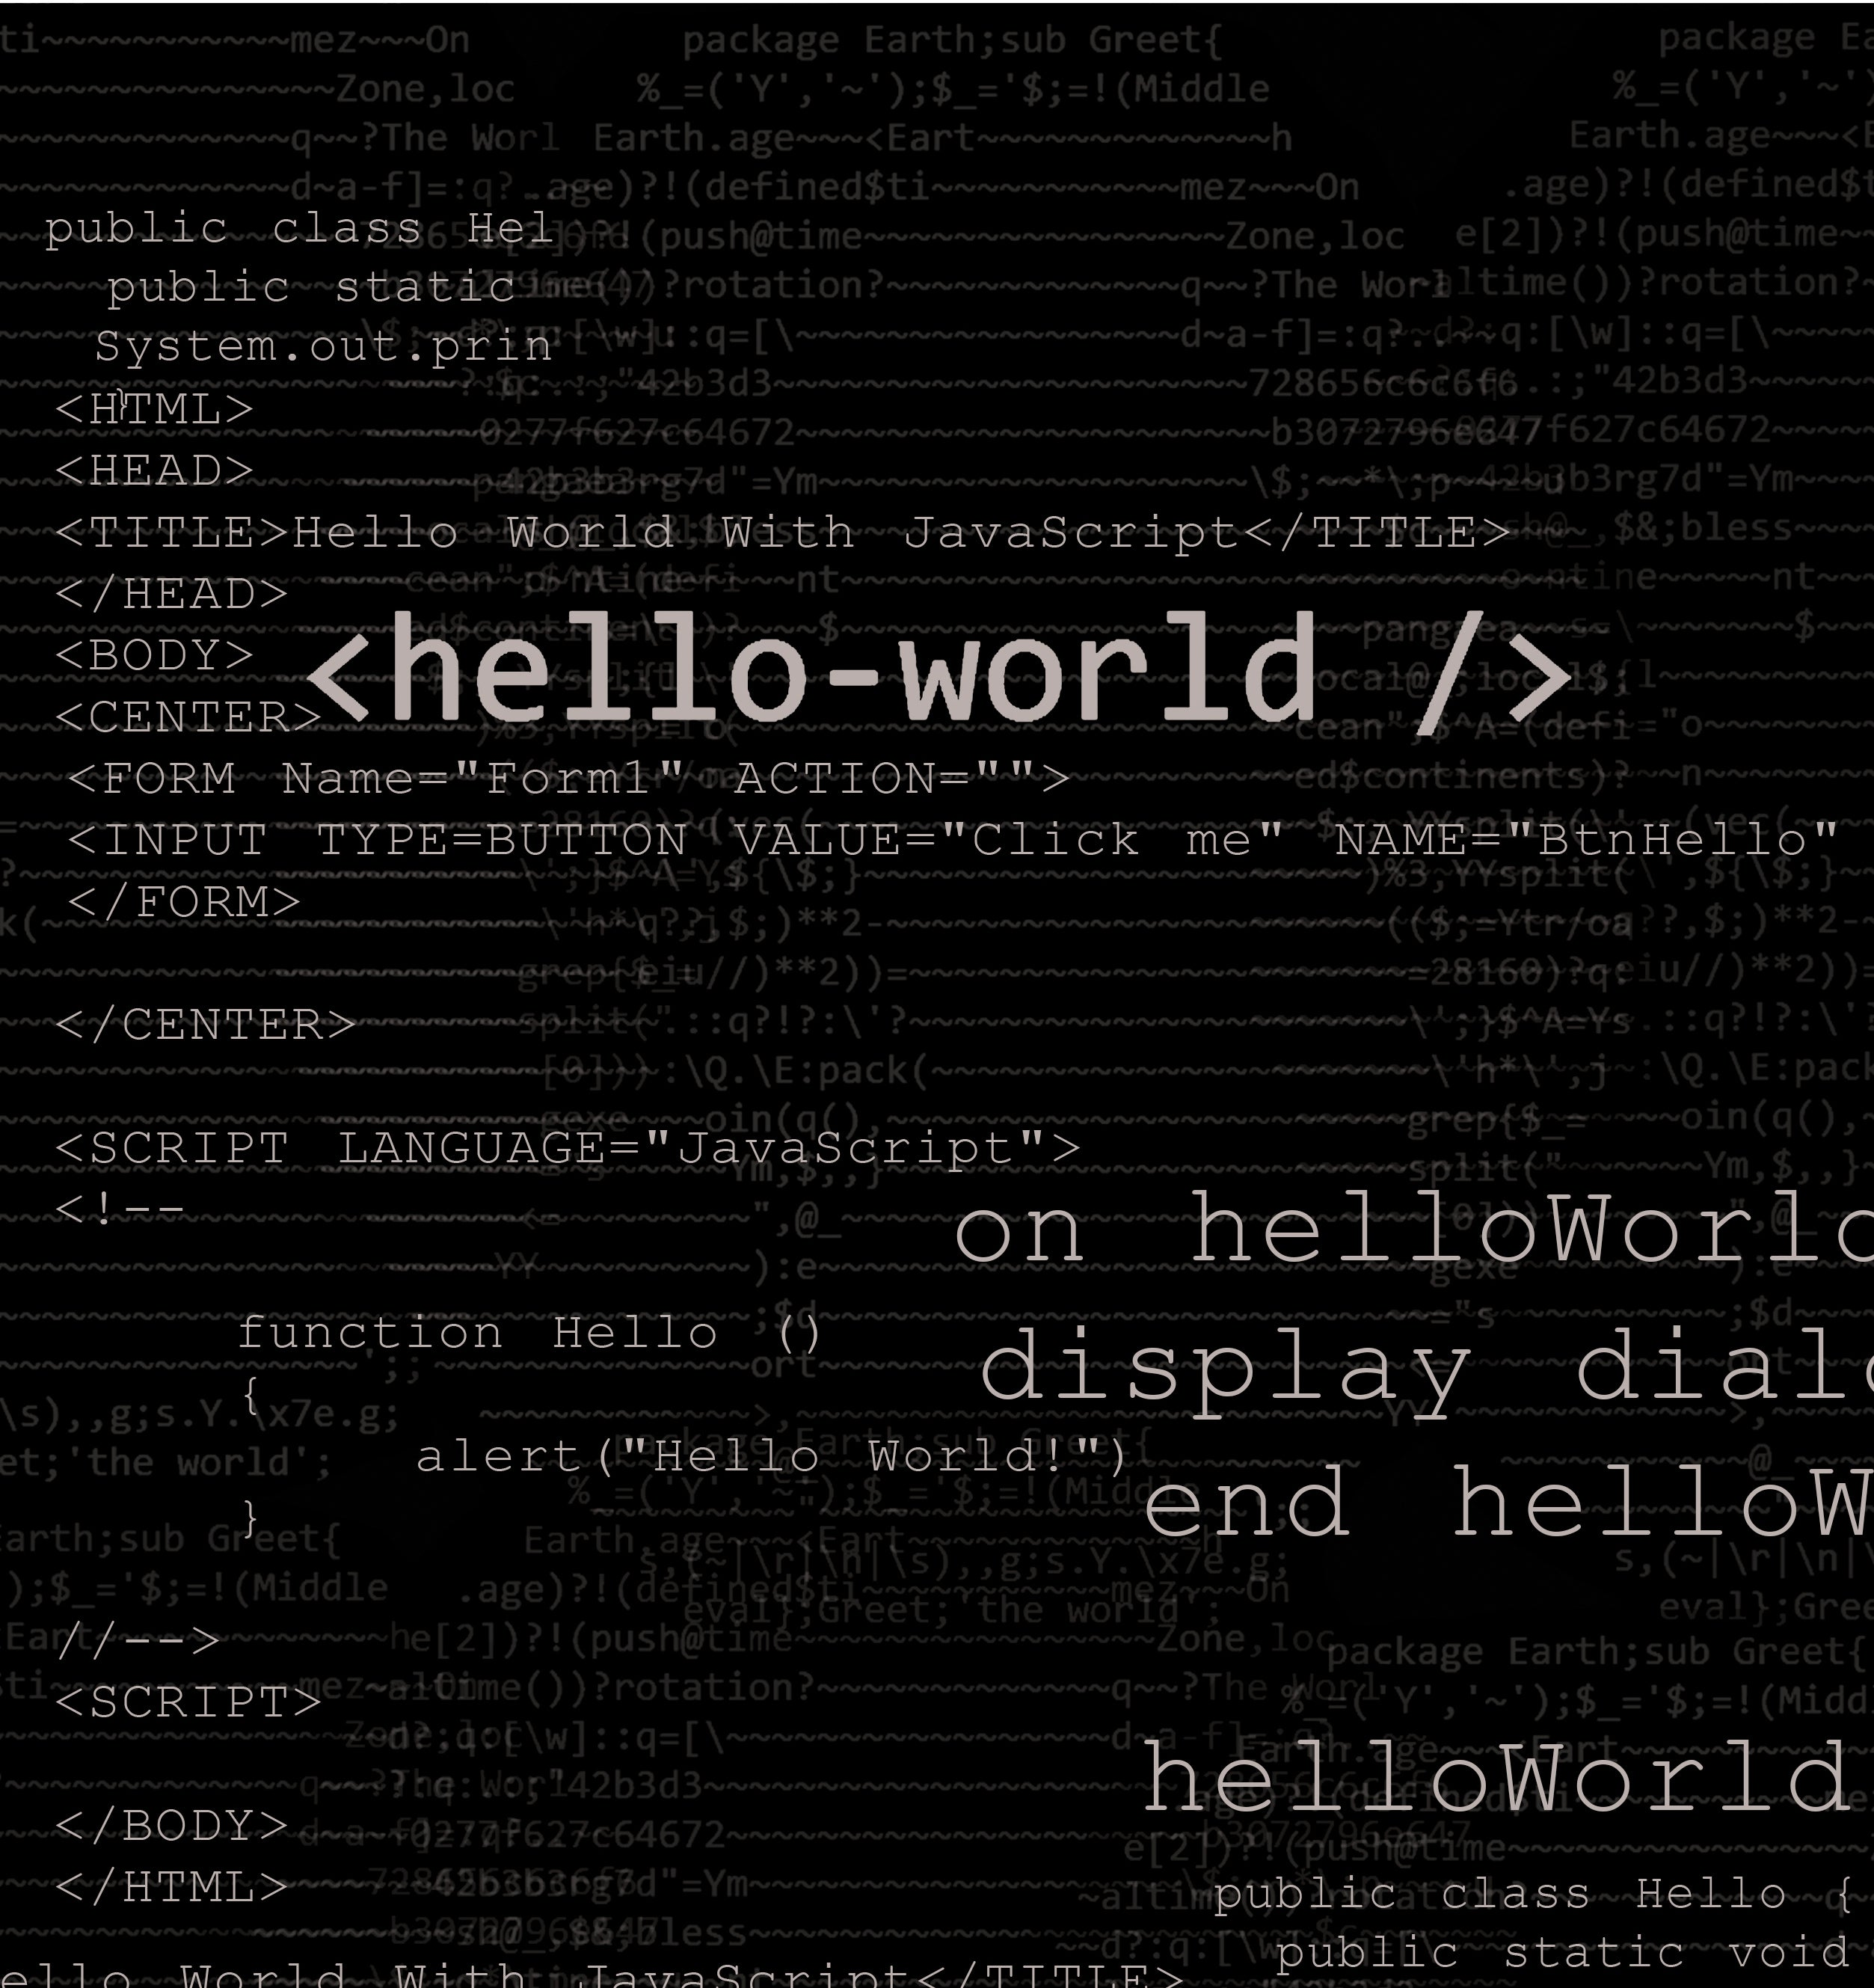 ... Hello World Dress ...